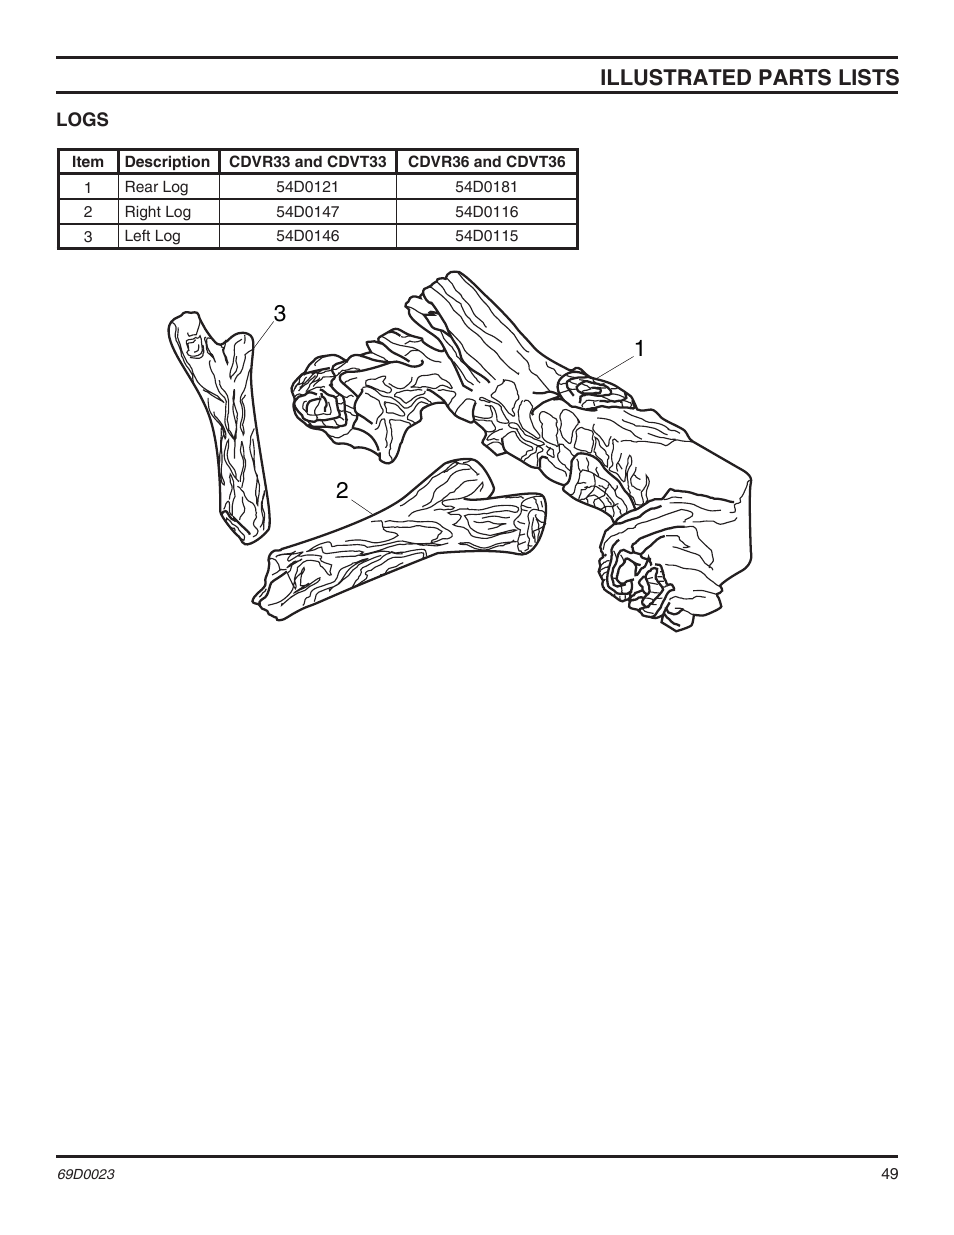 illustrated parts lists